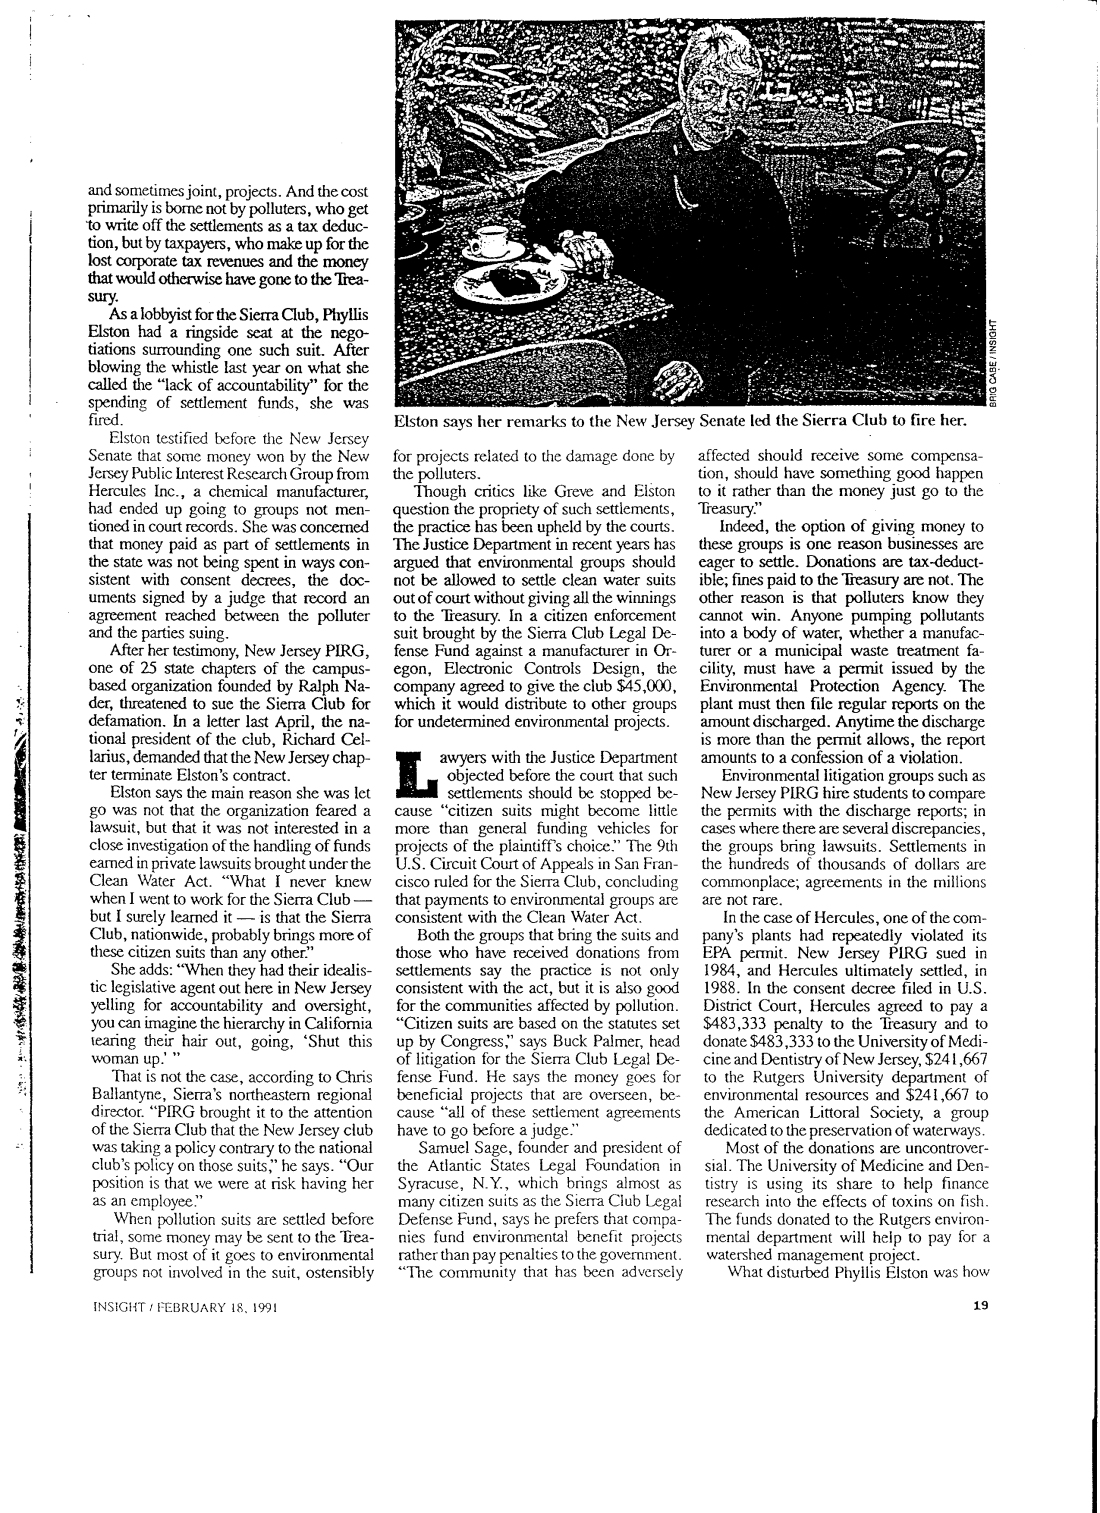 Insight Article 1991-2